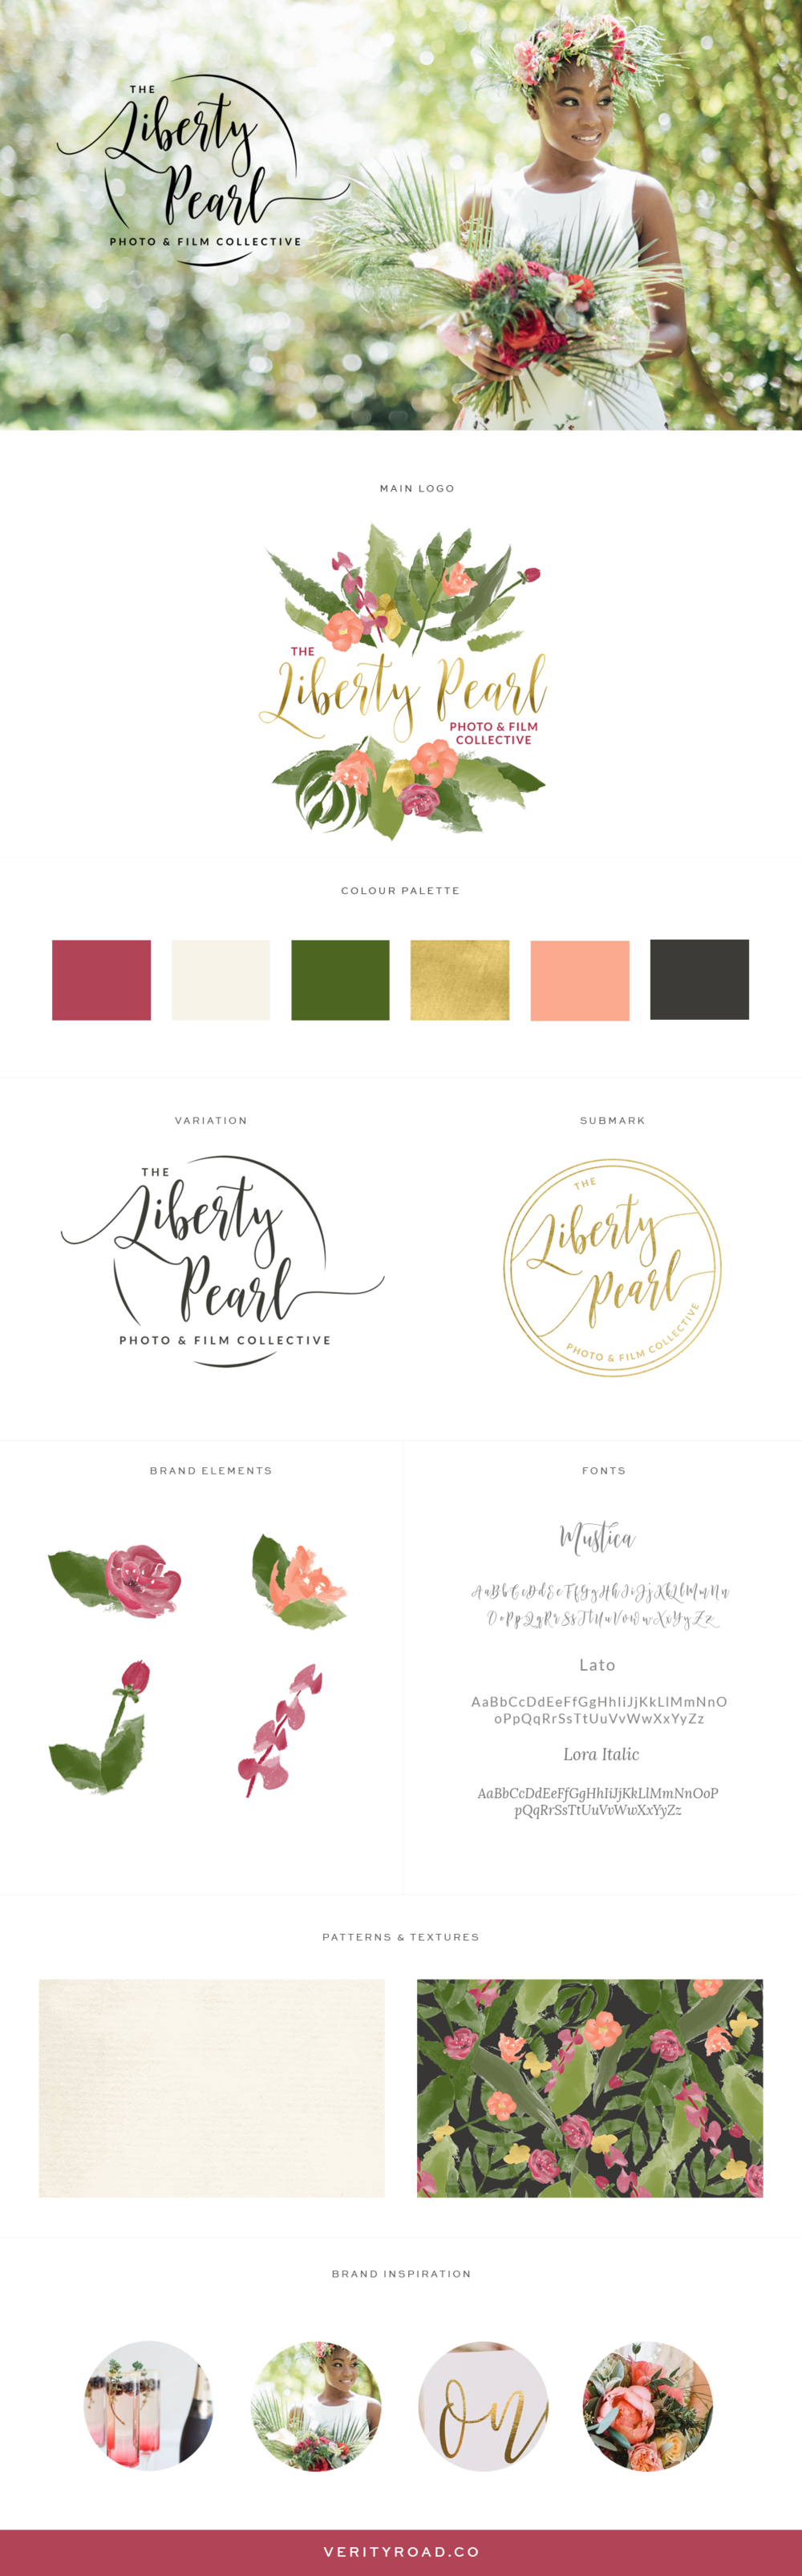 brand board for liberty pearl photography, luxury brand styling and web design for female entrepreneurs. feminine exotic branding, brand style guide, logo, submark, brand elements, script font, sans serif, GREEN, SAGE, BROWN, DEEP RED, CORAL, BRIGHT COLOR PALETTE, FLORAL pattern, flowers business owner, blogger. See more for mood board, social media branding, print materials and website design.